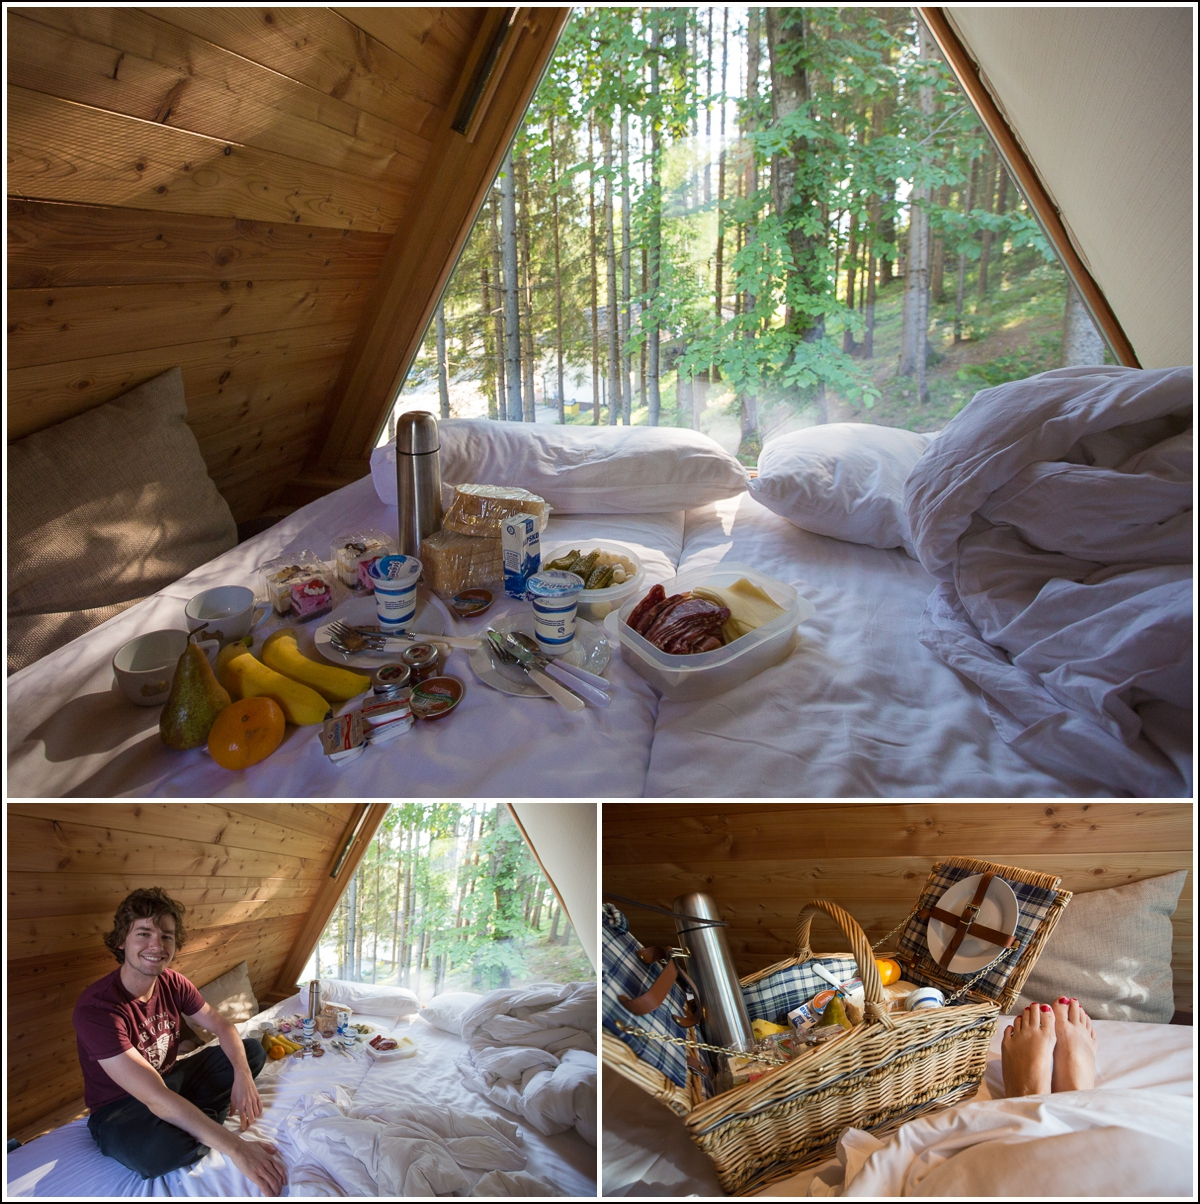 bled-camping-hut2